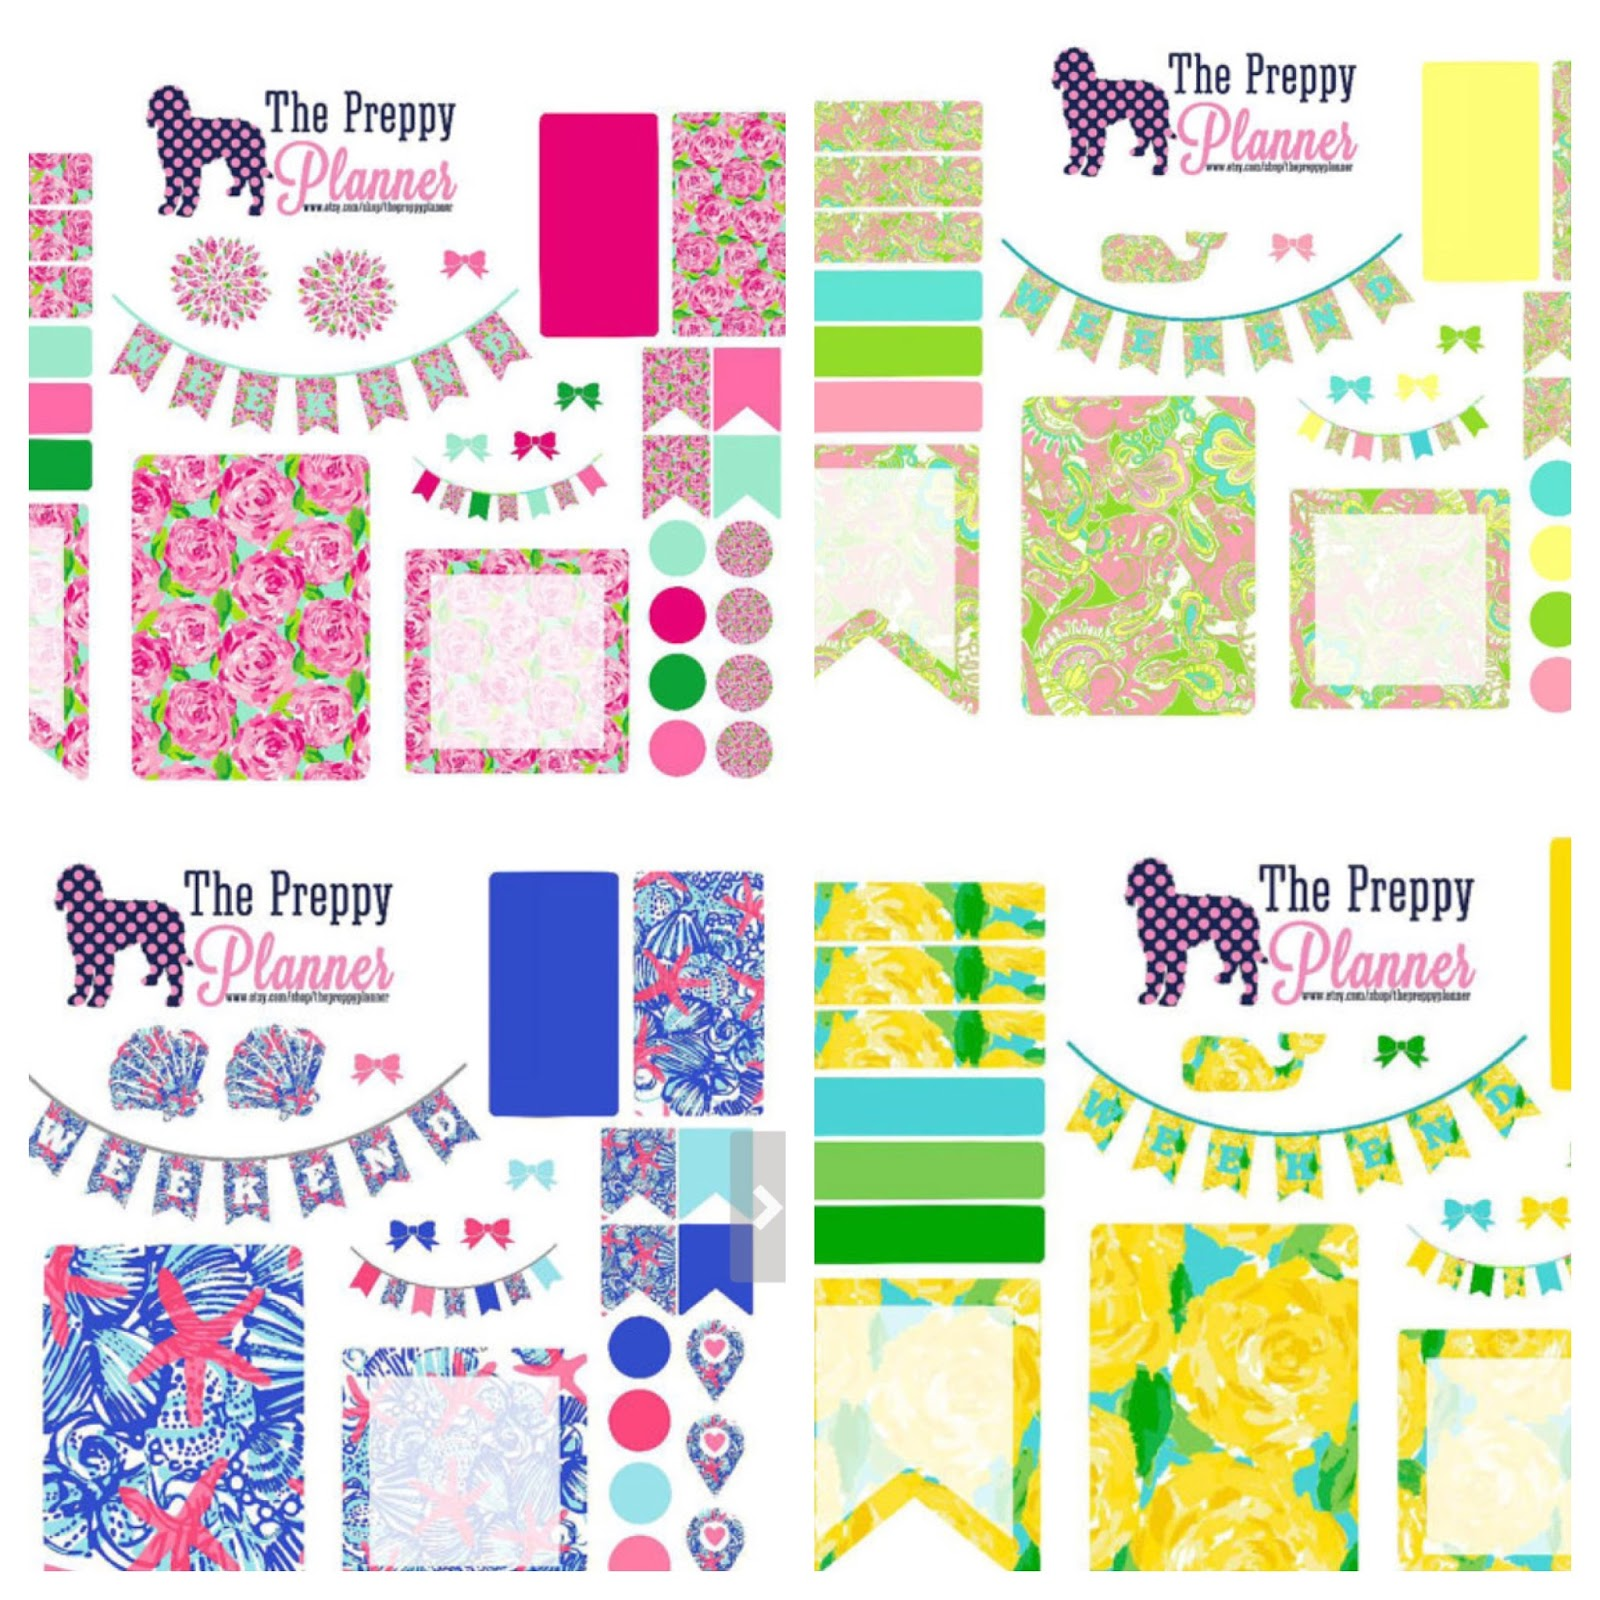 Lilly Pulitzer Large Month Academic Hardcover Planner with Daily, Weekly, Free 2-day shipping for all Prime members.